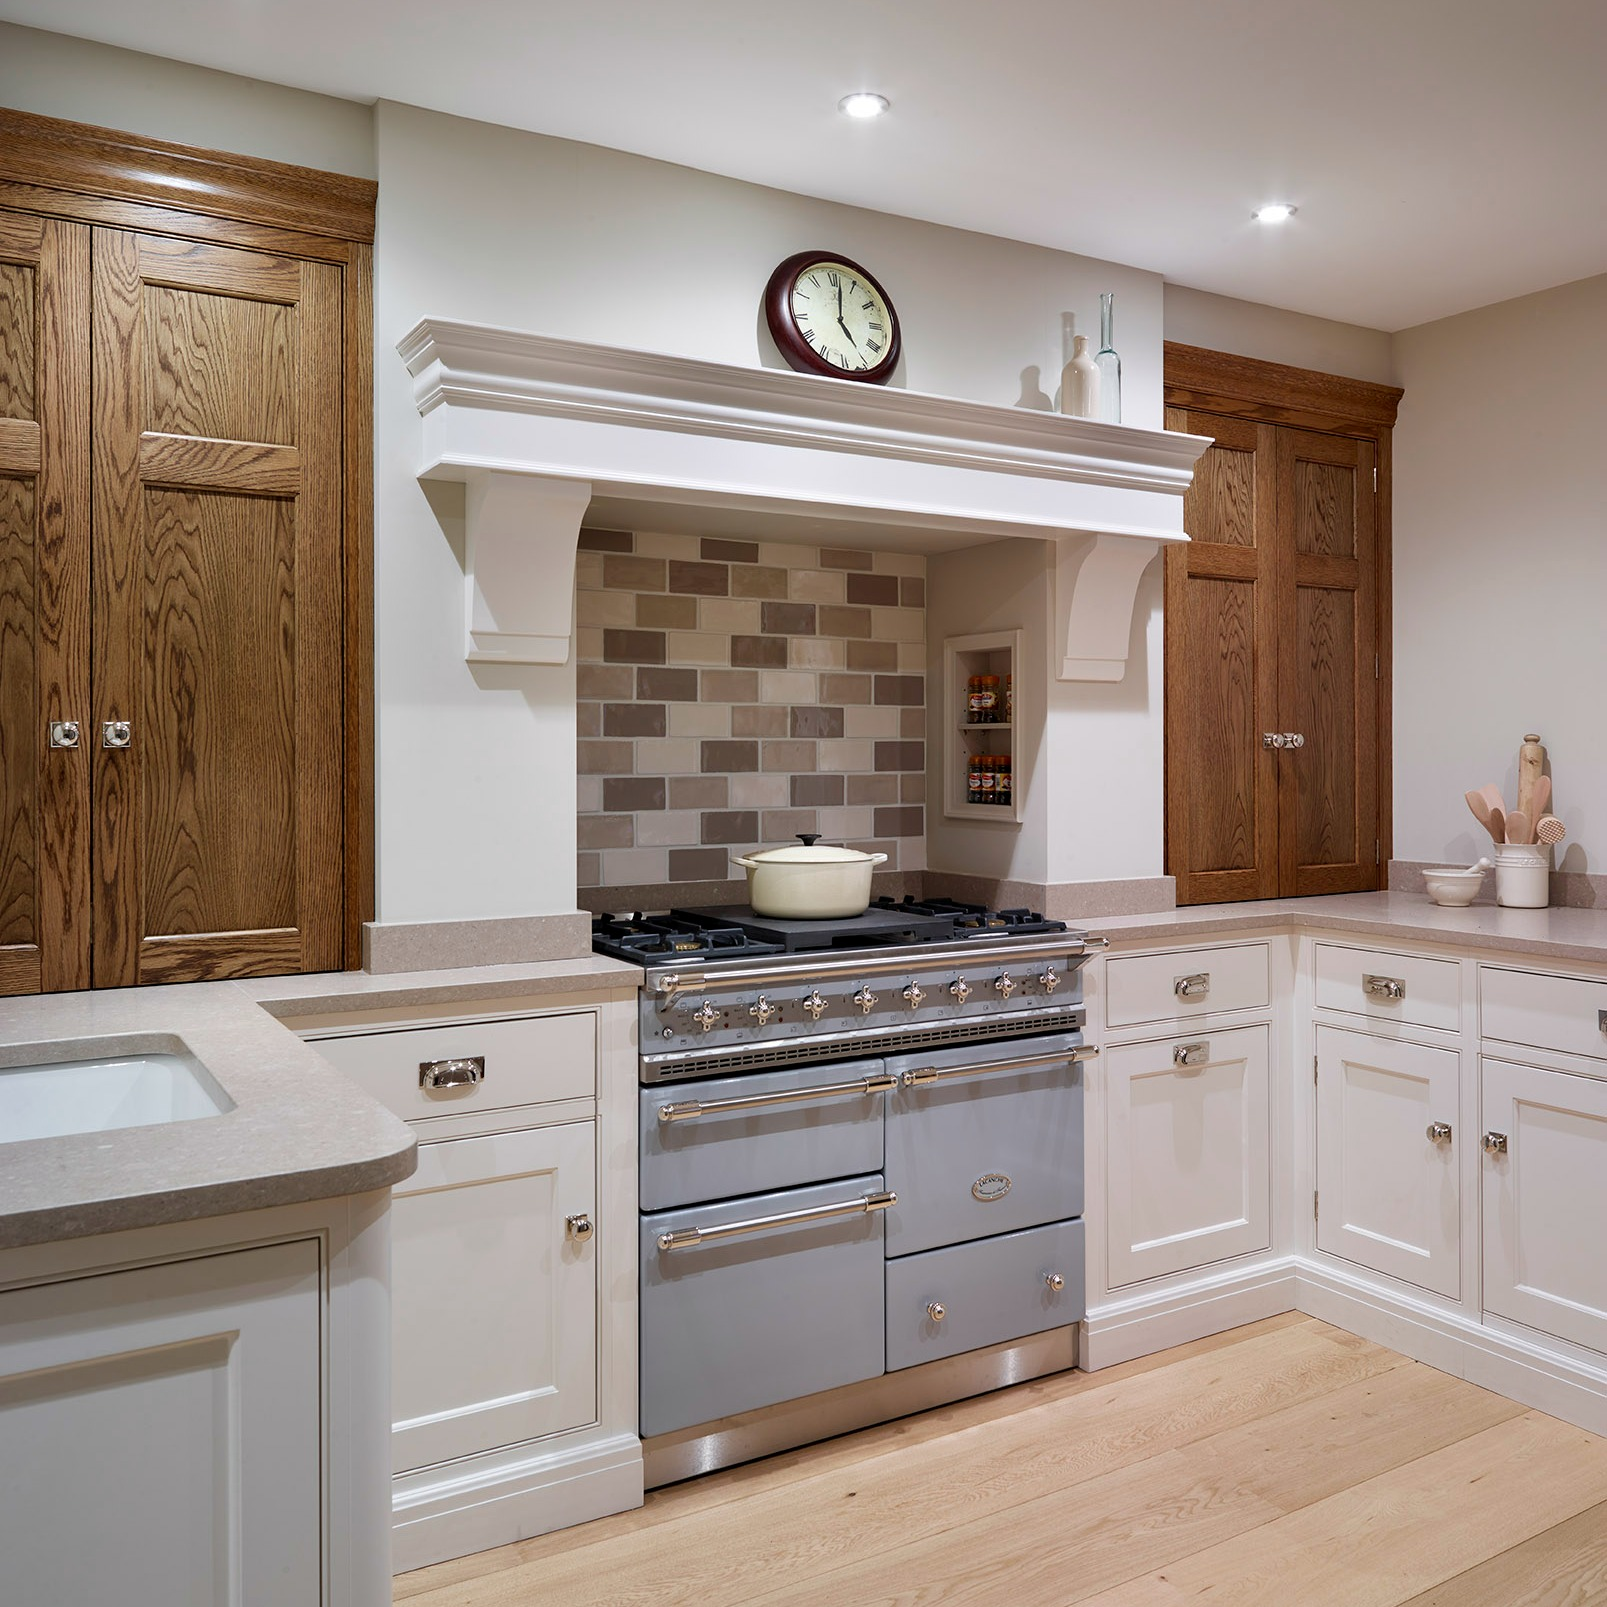 The Nickleby Kitchen - St Albans Showroom - Humphrey Munson